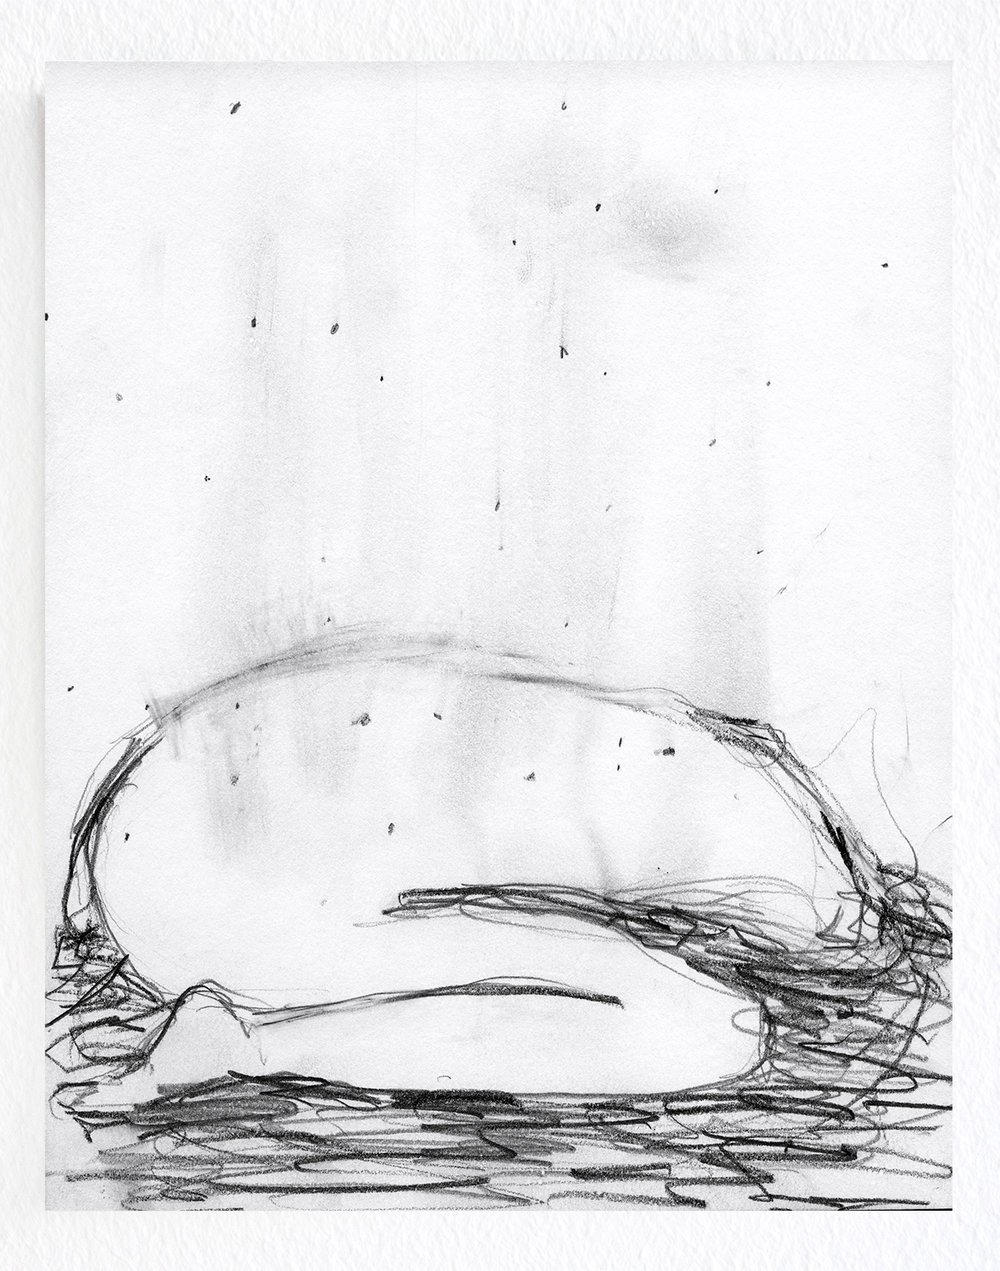 Untitled / 2013, pencil on paper, 15 x 22 cm